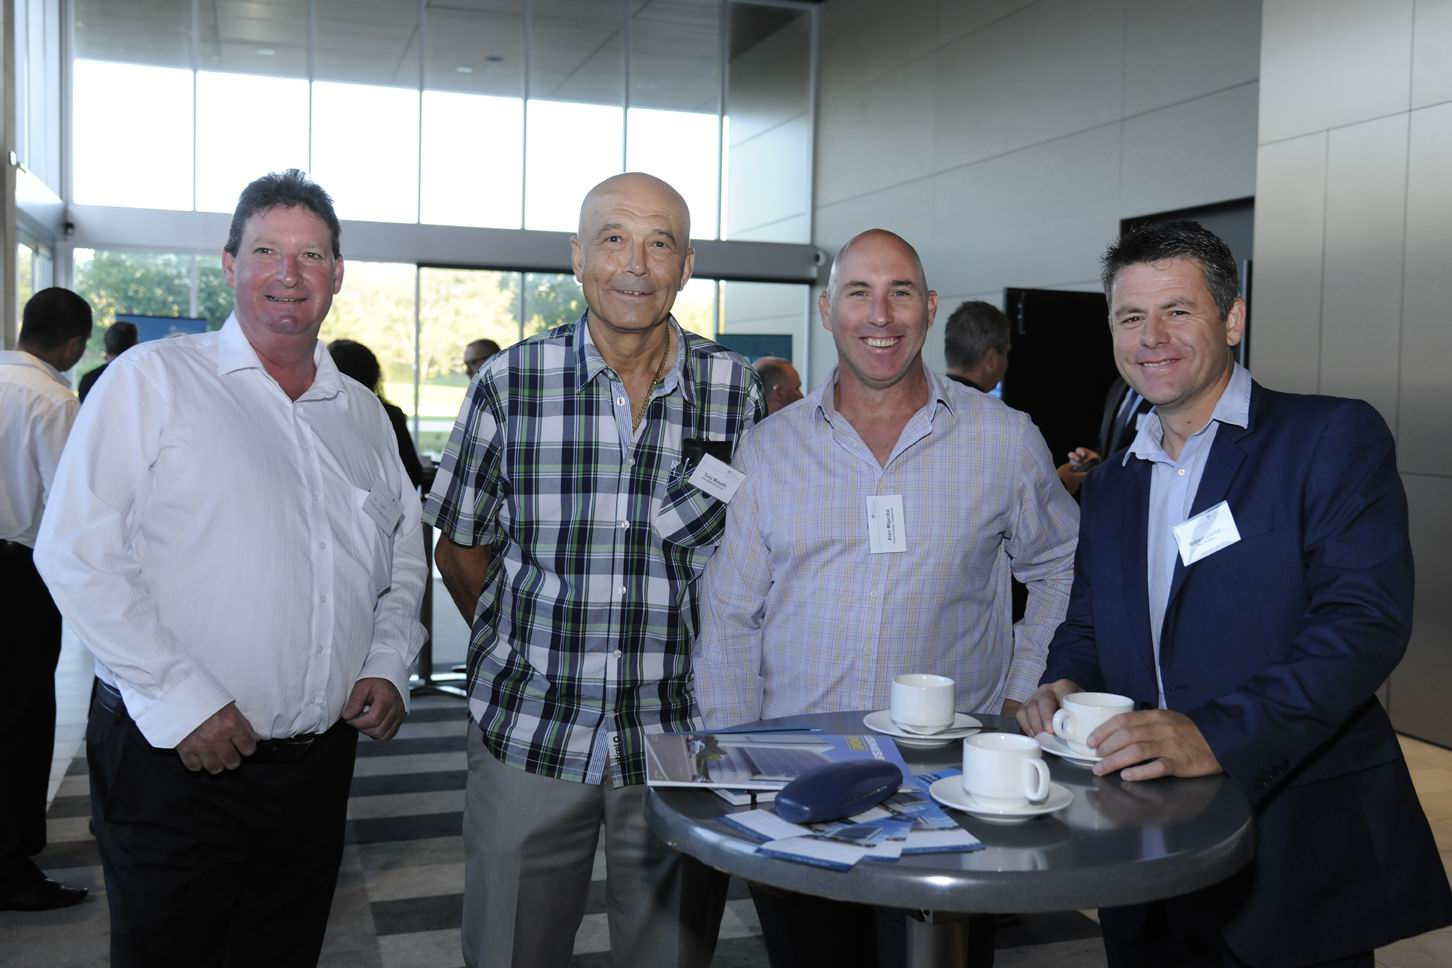 Paul Forrest, Tony Musulin, Alan Mijacika and Robert Clarke. Picture: Chris Kershaw